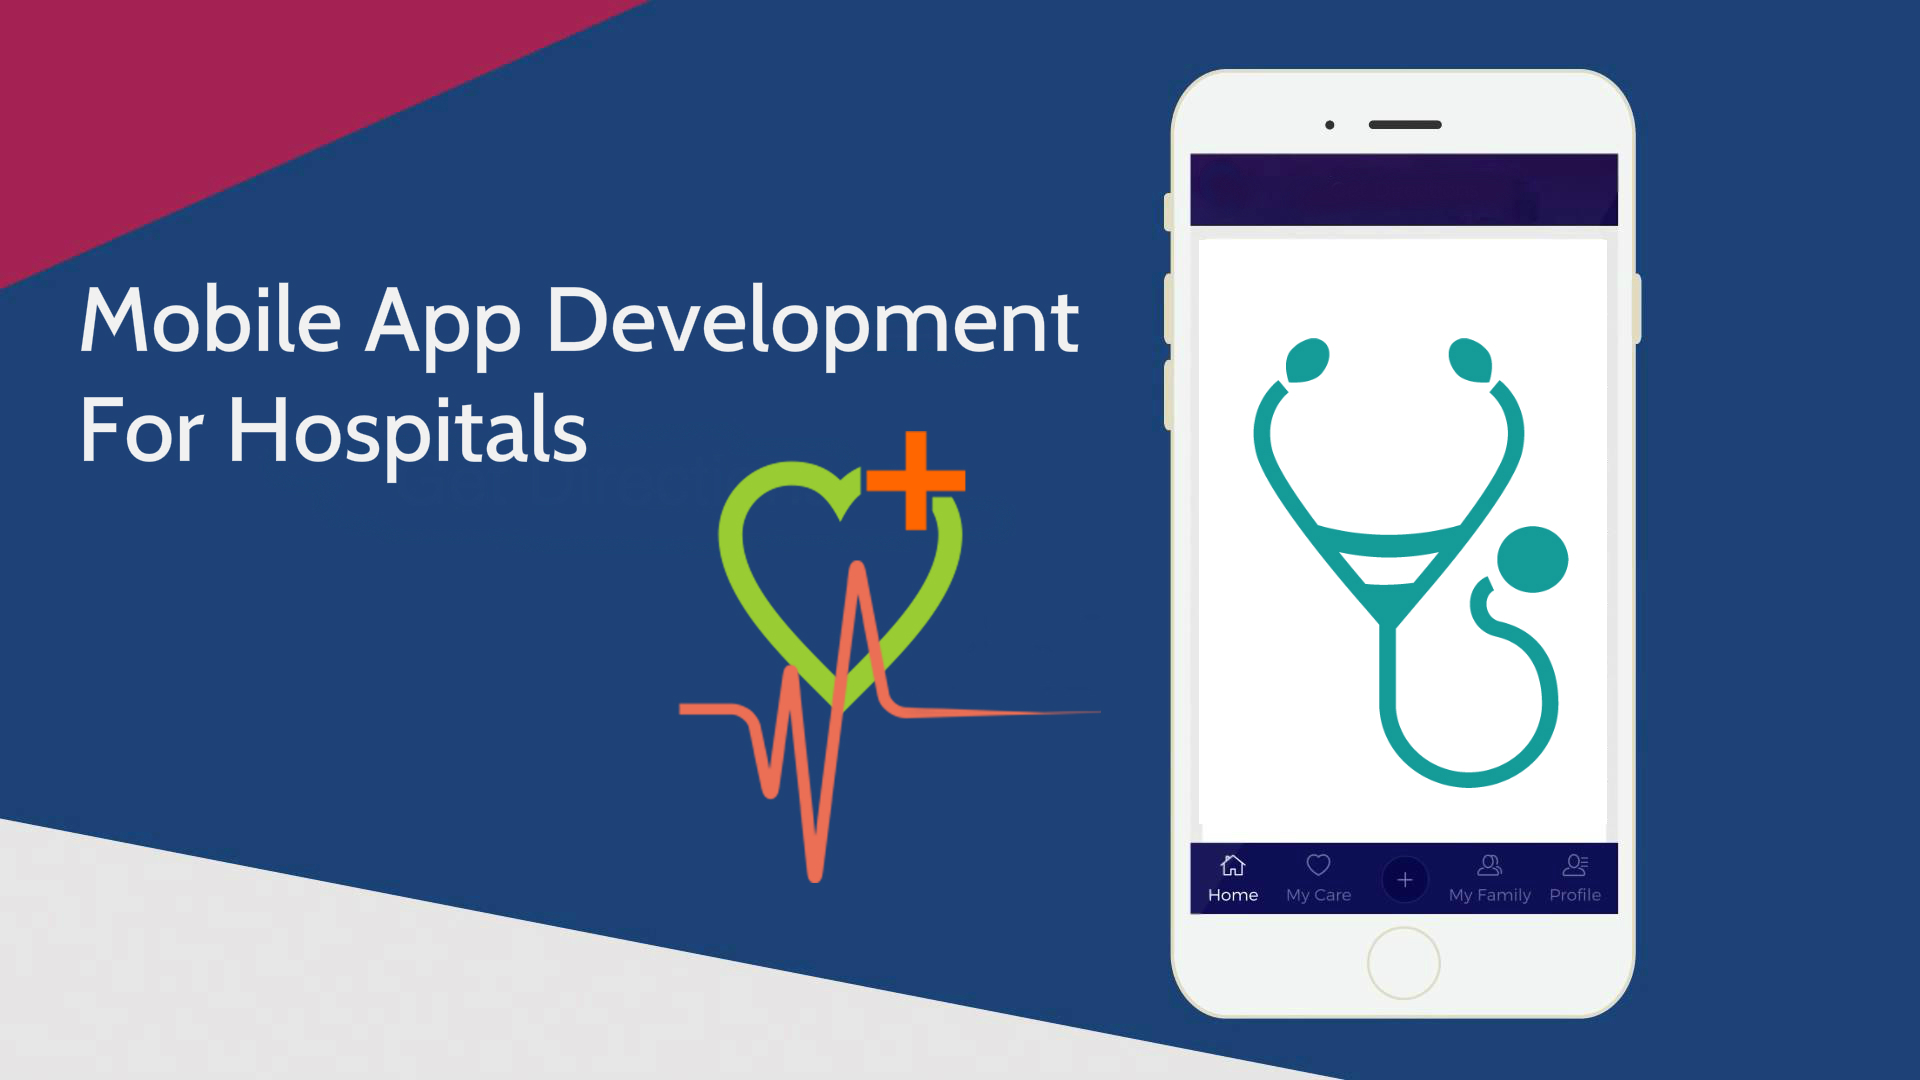 Top 5 Features That Hospitals Should include In The Mobile App